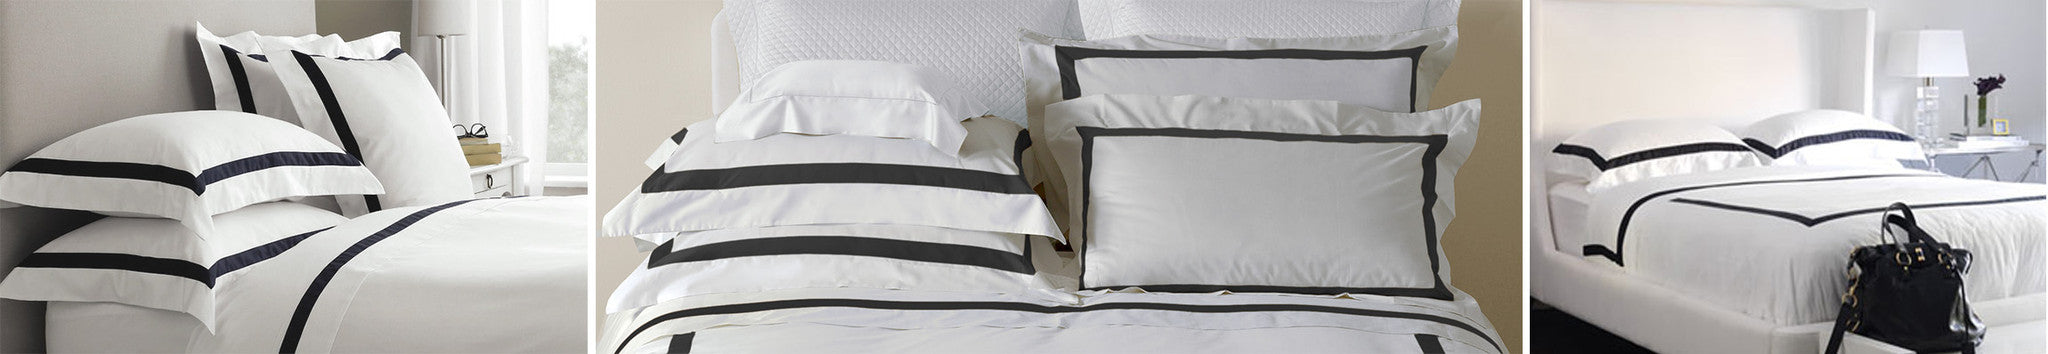 SORRENTO BEDDING COLLECTION